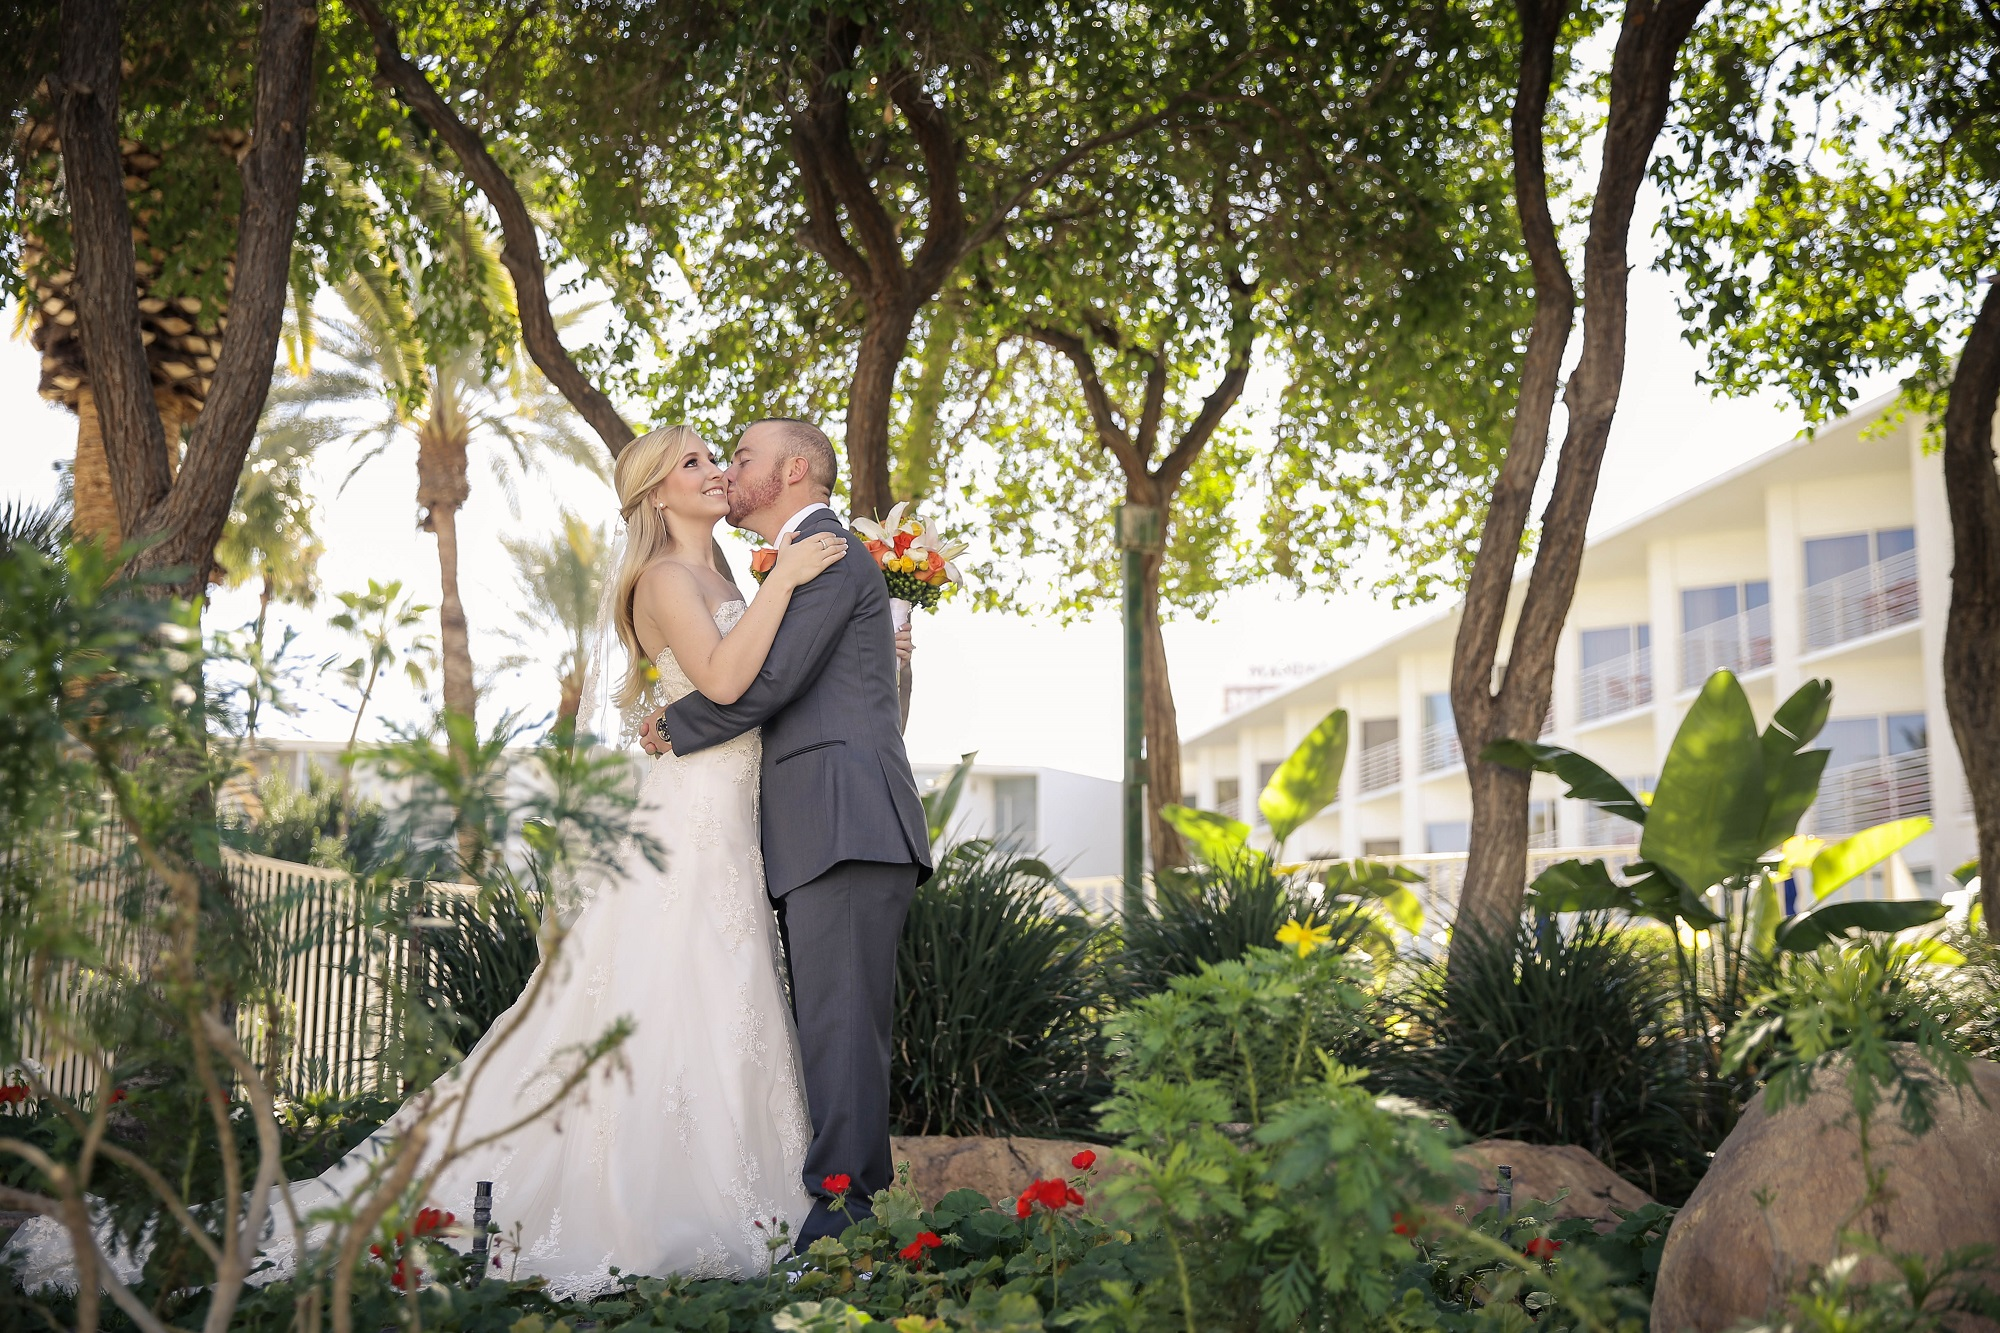 tropicana las vegas wedding chapel offers all inclusive wedding packages for your dream ceremony